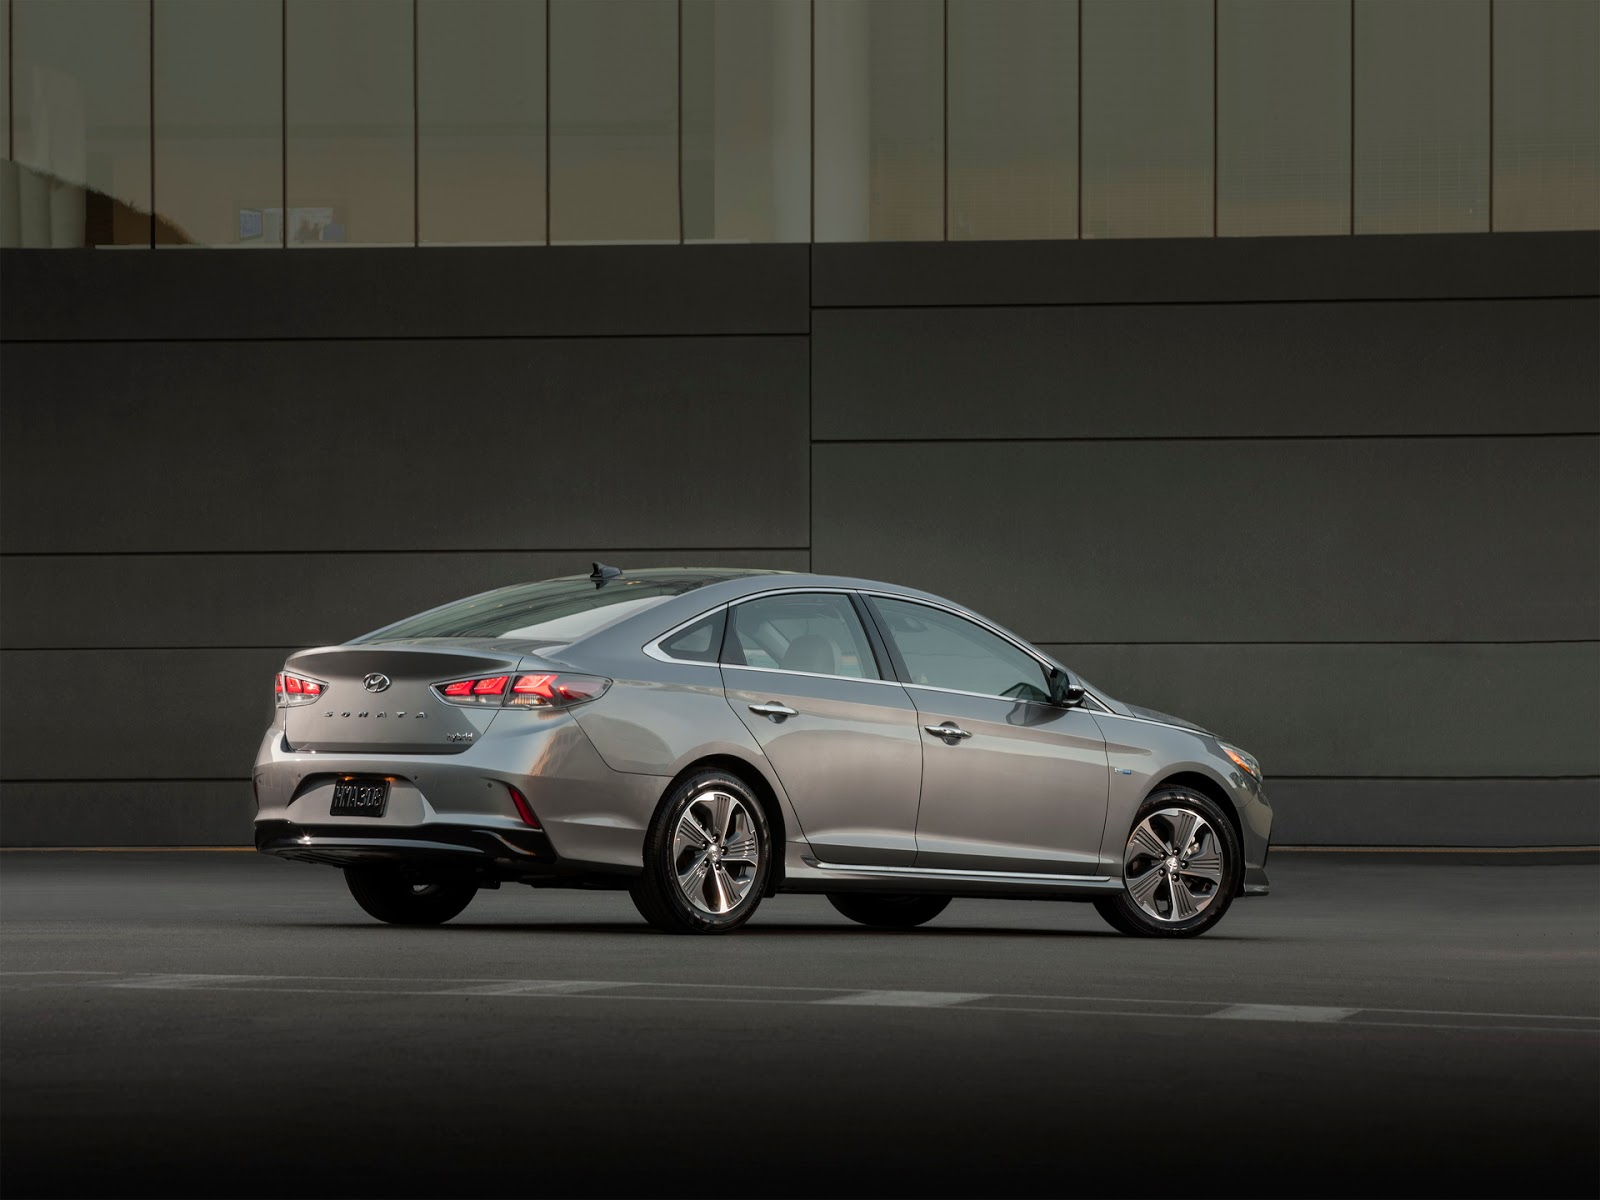 Hybrid Hyundai Sonata 2018 </figcaption> </figure> <p> &quot;Hybrids&quot; Hybrid Hyundai Sonata 2018 &quot;width =&quot; 696 &quot;height =&quot; 522 &quot;data-recalc-dims =&quot; 1 &quot; &quot;Also acquired new, more rigid stabilizers of lateral stability, retuned steering controls and levers of a rear suspension of greater durability. </p> <p> The list of novelty equipment includes an emergency braking system and a tracking function for the number of movements. The models also received a modified multimedia system that can inform drivers in real time about traffic jams. </p> <figure style=